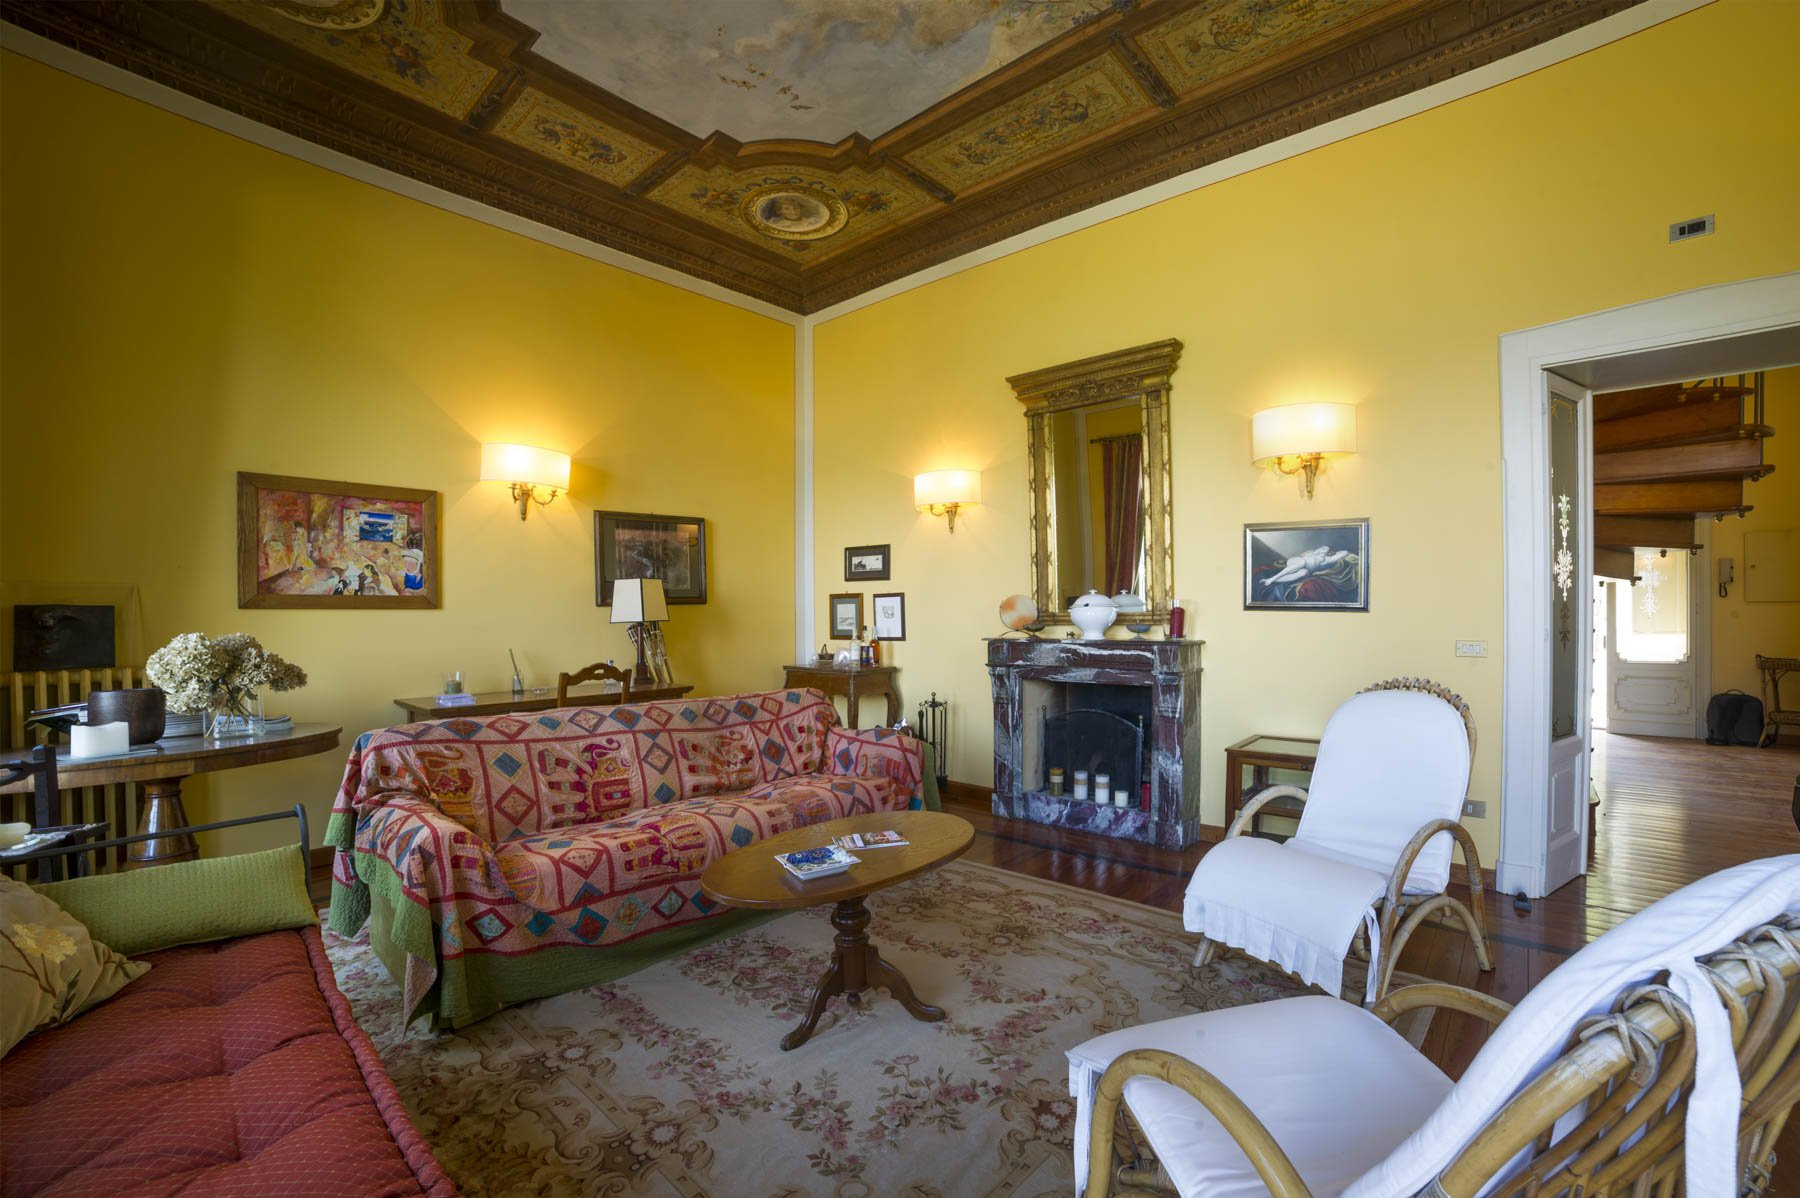 Luxurious apartment for sale in Stresa - large salon